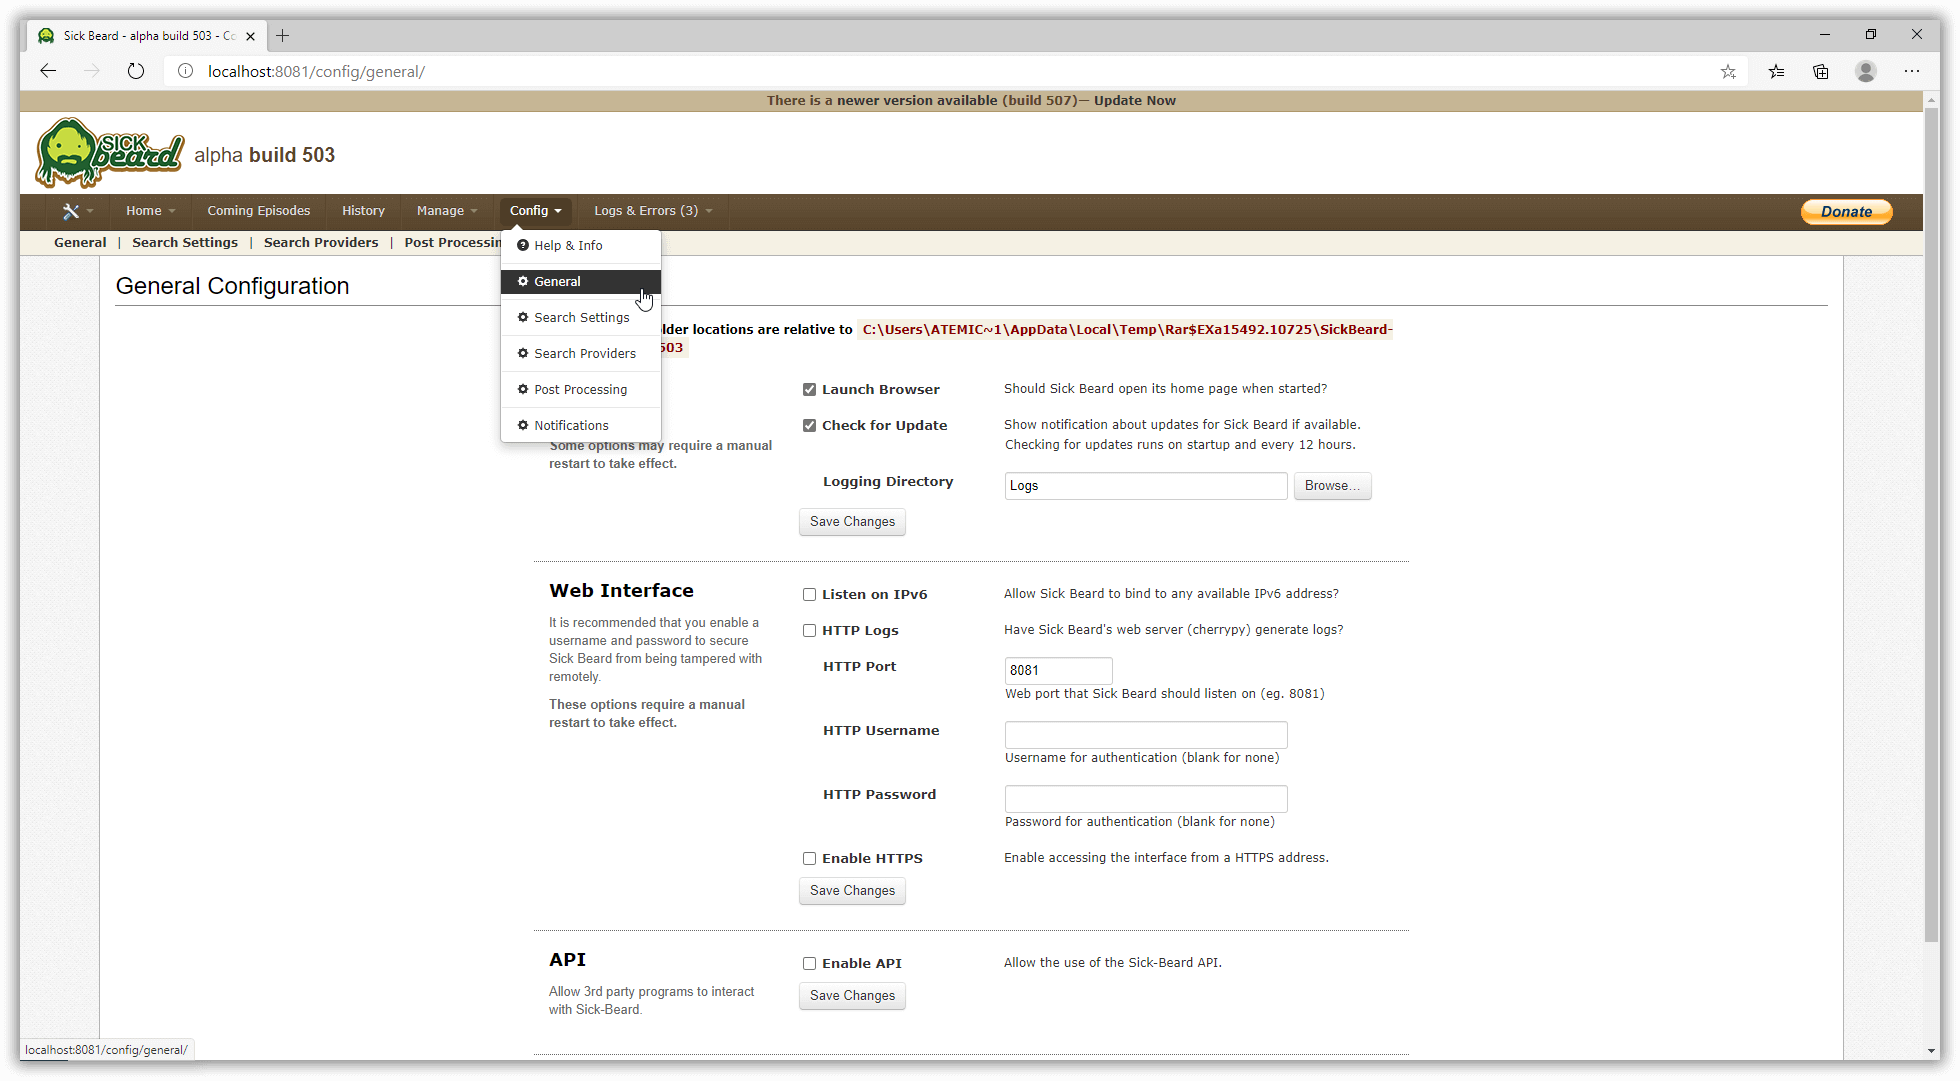 Sickbeard Newsreader Configure General Settings